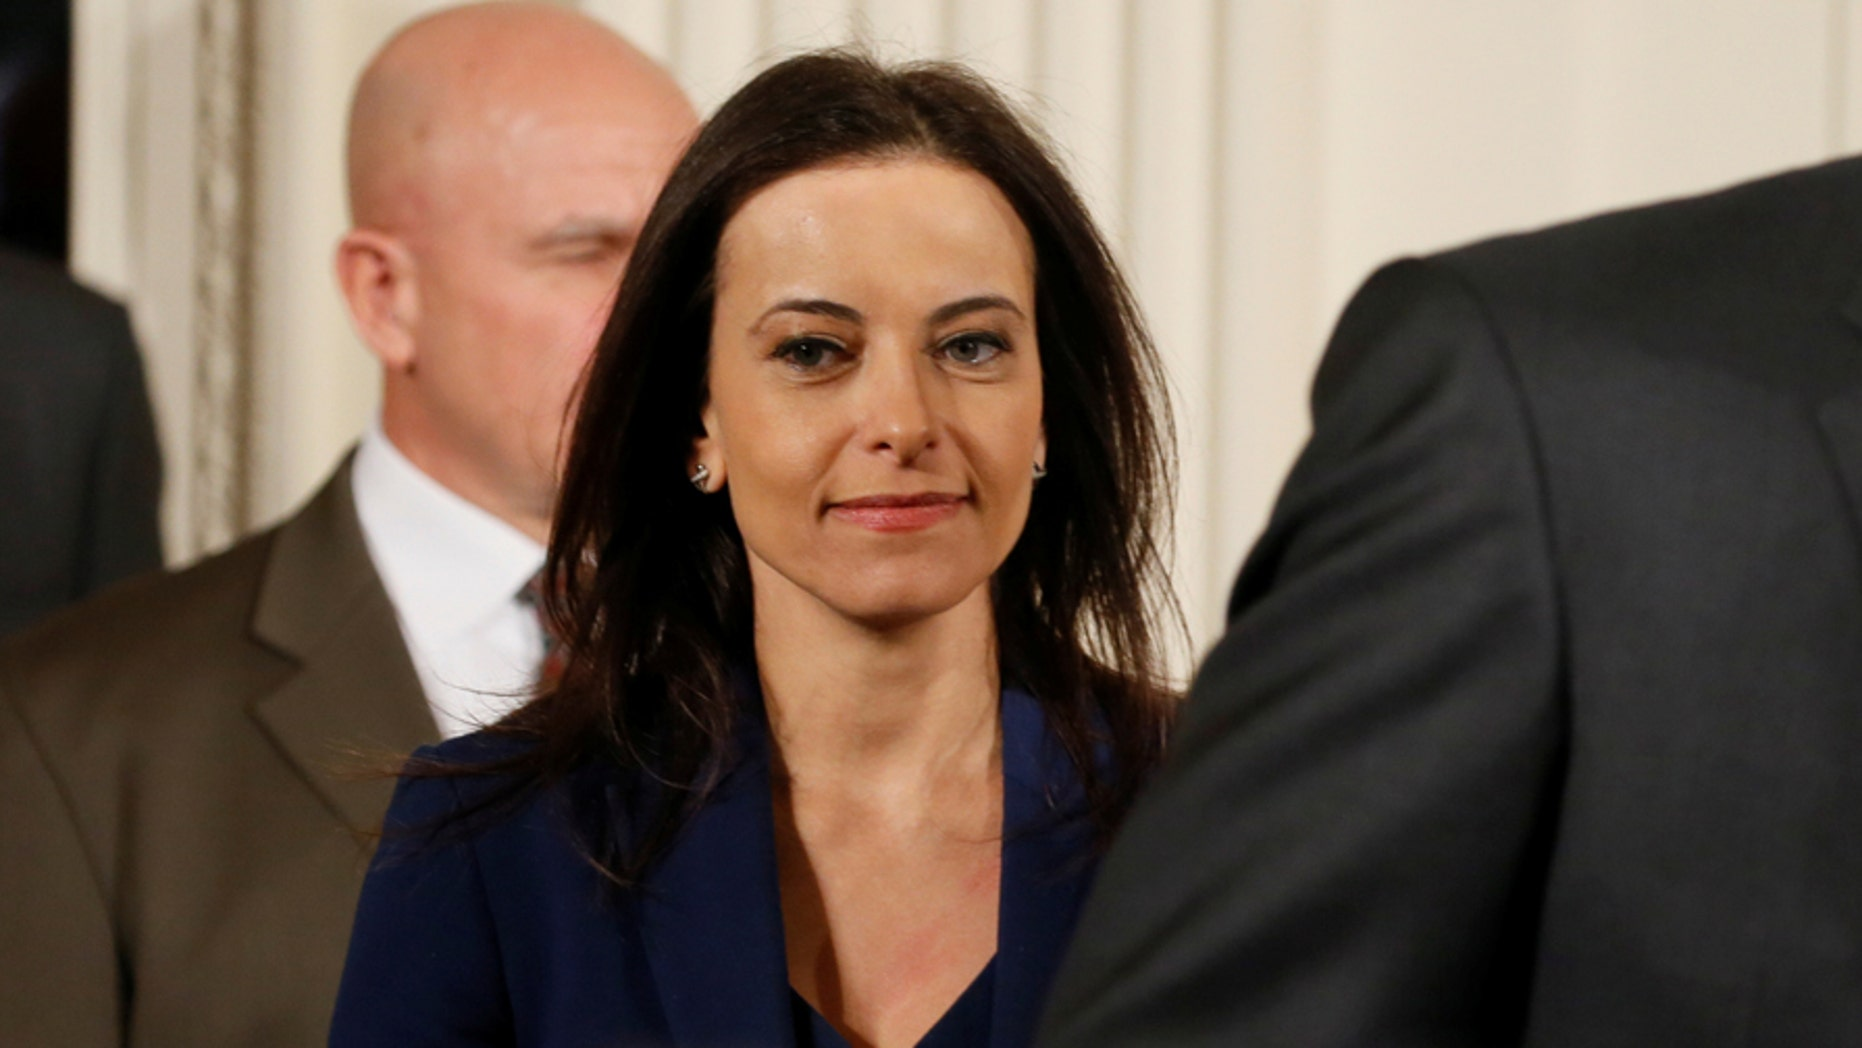 U.S. Deputy National Security Advisor Dina Powell announced Friday she will leave the Trump administration.